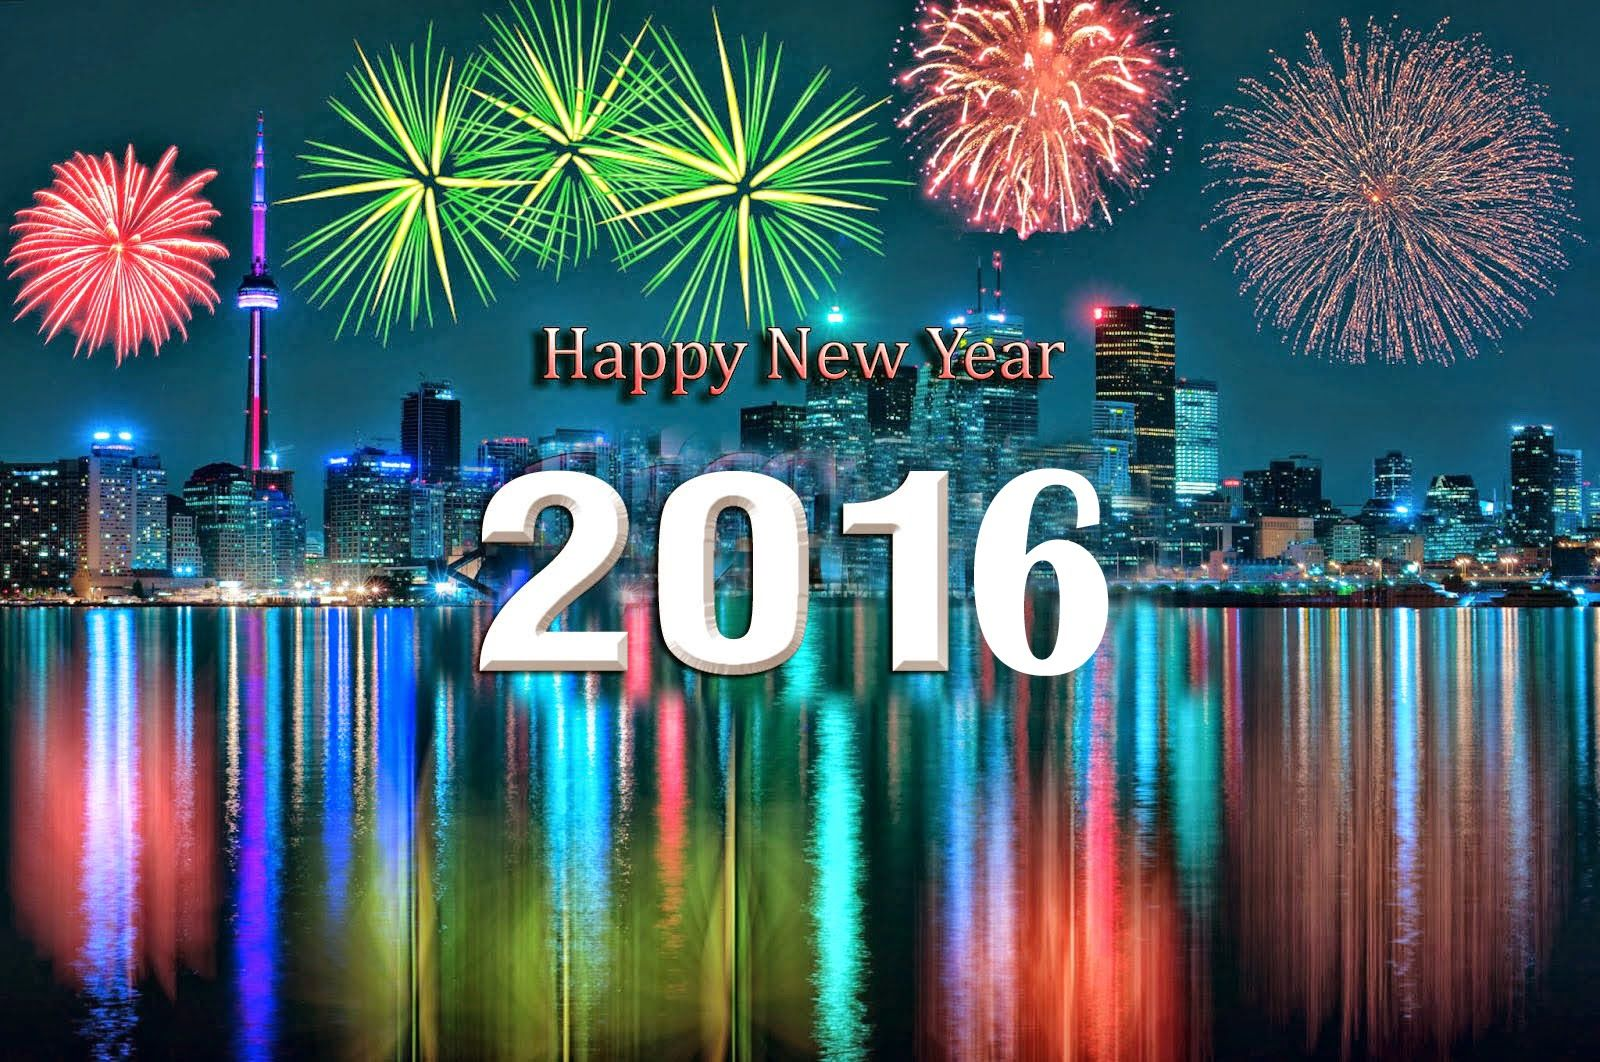 Pin by Pamela Henry on new years  Happy new year wallpaper, New